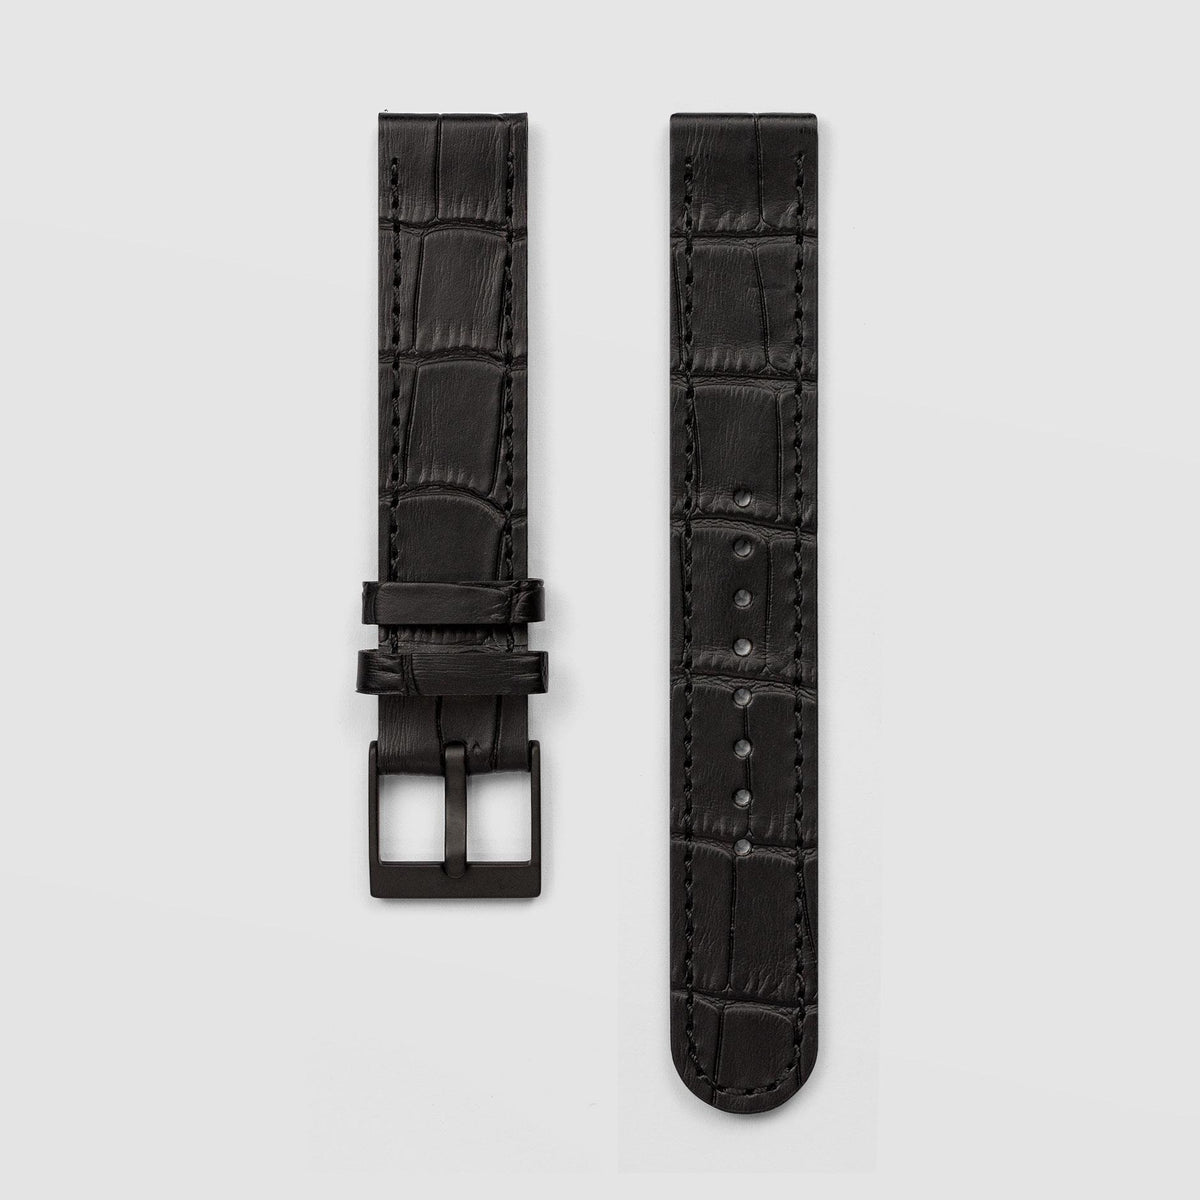 Croc Grain Black Watch Strap 18mm Watch Strap AÃRK Collective - der ZEITGEIST